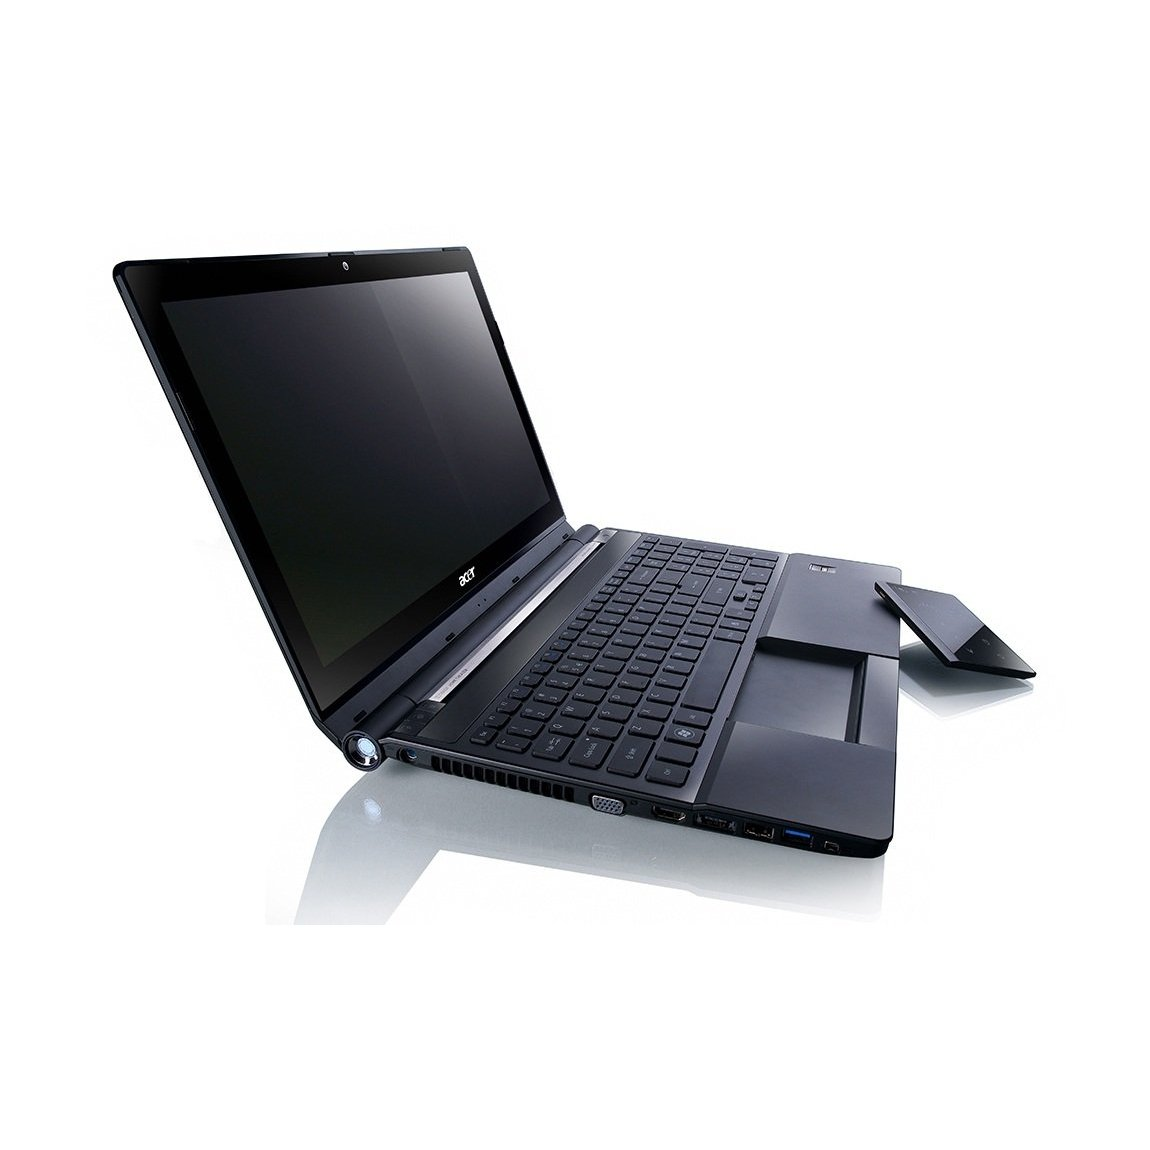 Acer Aspire 5951G Intel Chipset Driver for Windows 10